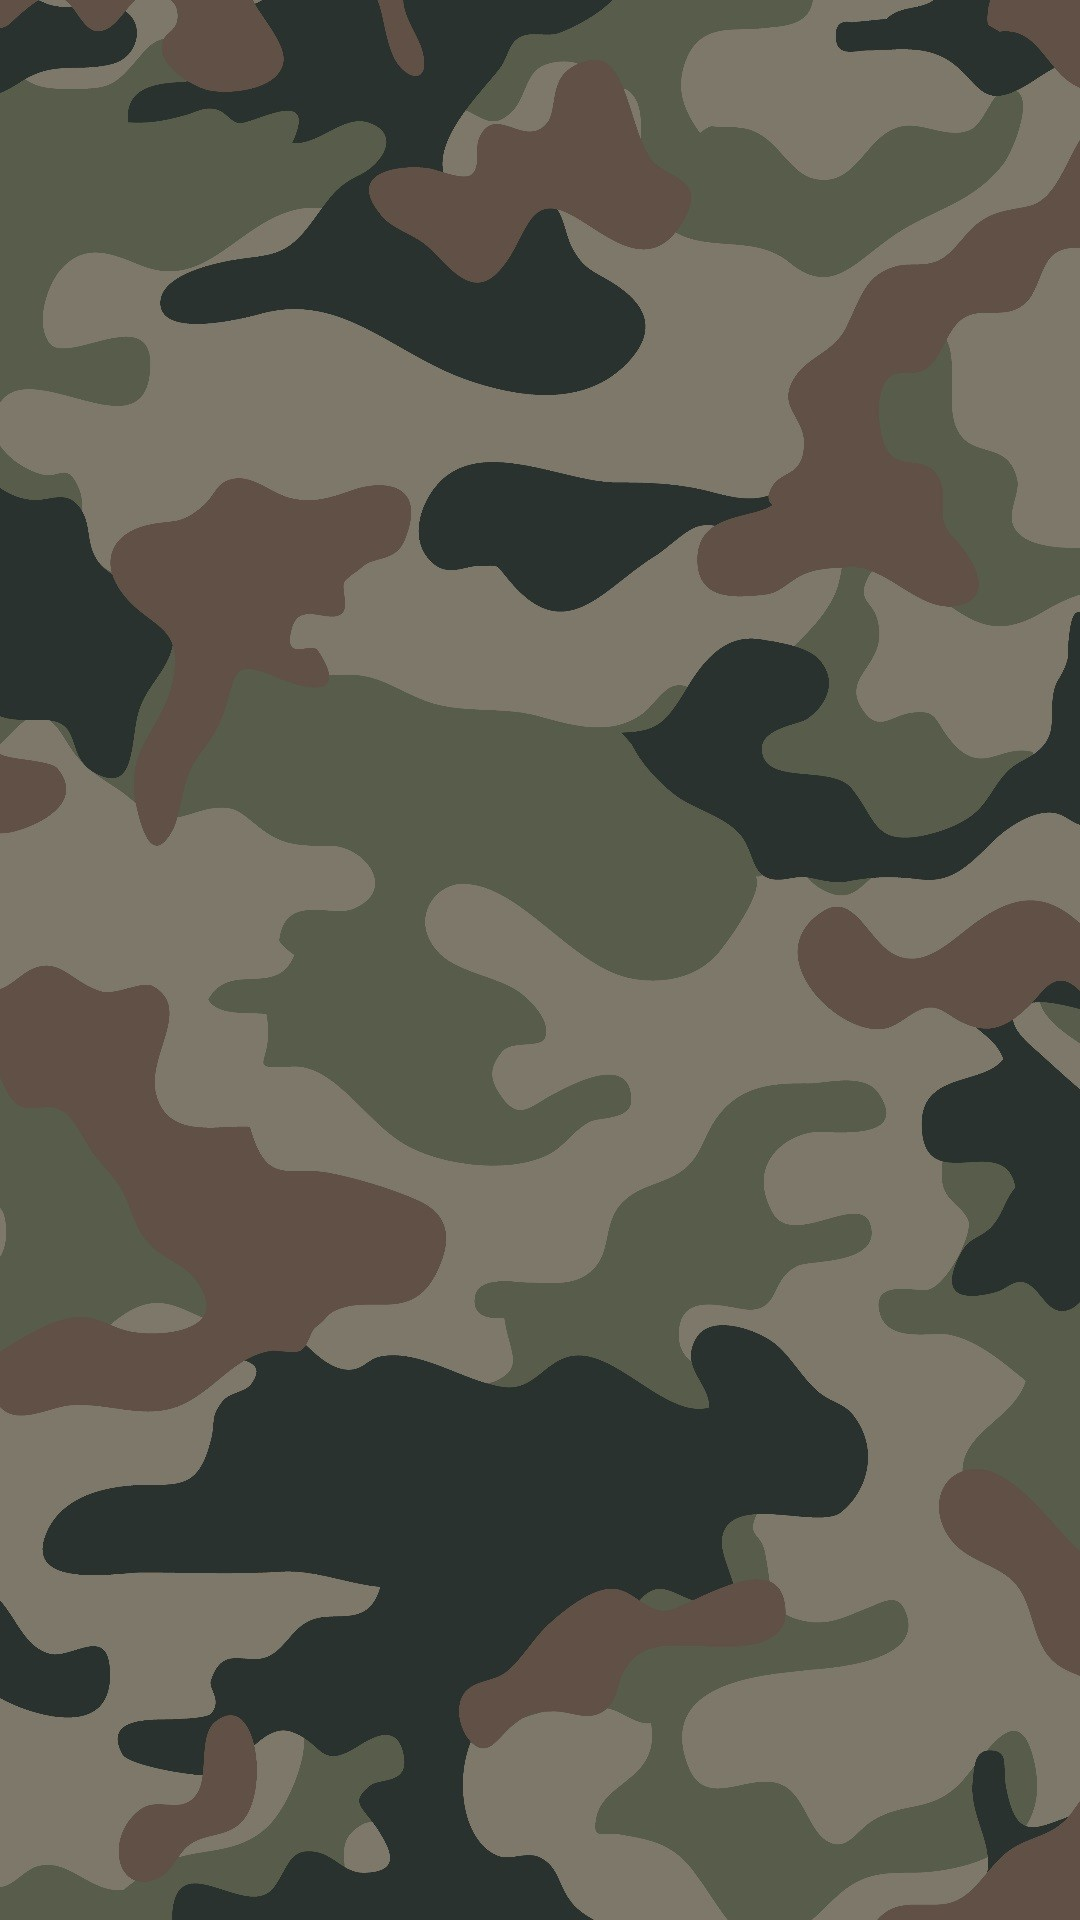 1080x1920 wallpaper.wiki-Camo-iPhone-Images-HD-PIC-WPC008094